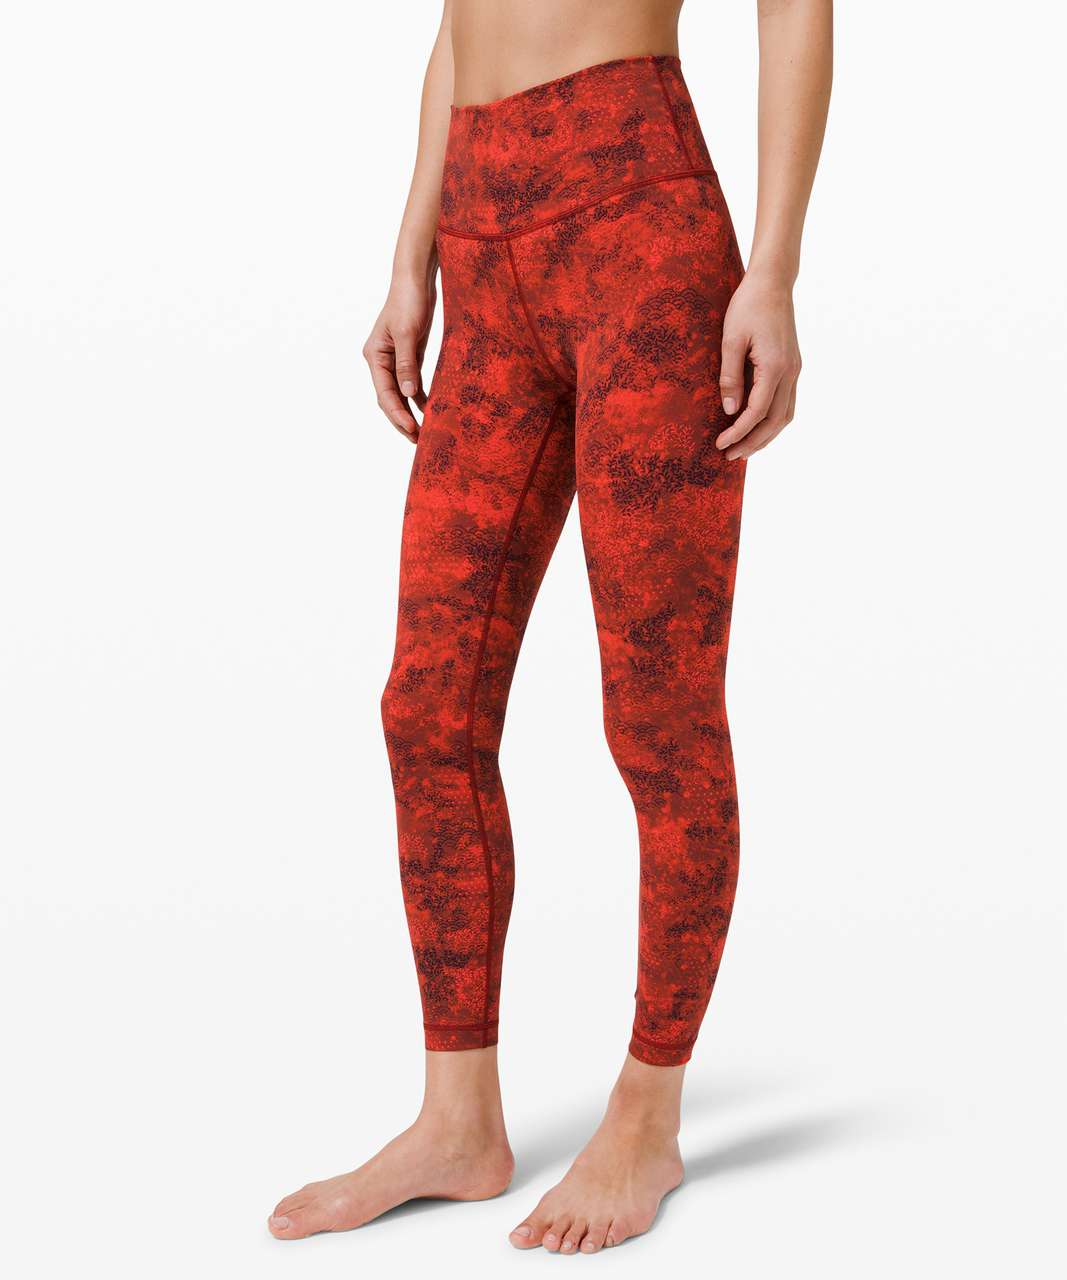 """Lululemon Wunder Under High-Rise Tight 25"""" Full-On Luxtreme *Lunar New Year - Intricate Oasis Love Red Multi"""